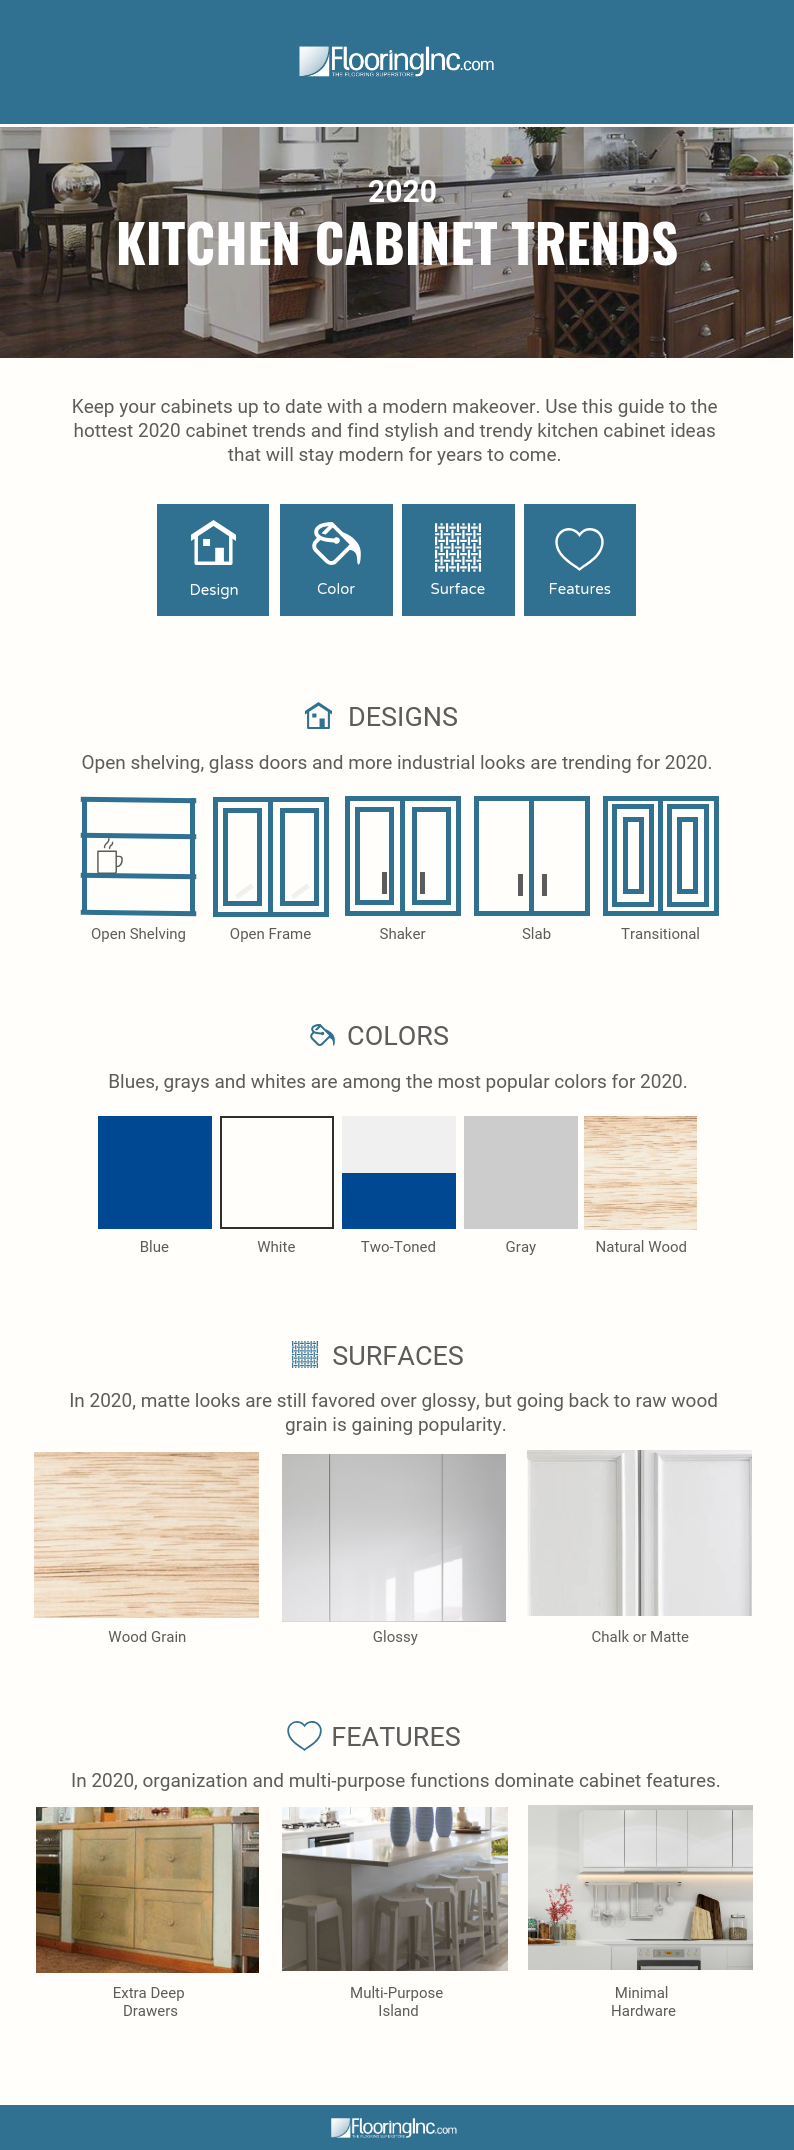 FlooringInc 2020 kitchen cabinet trends